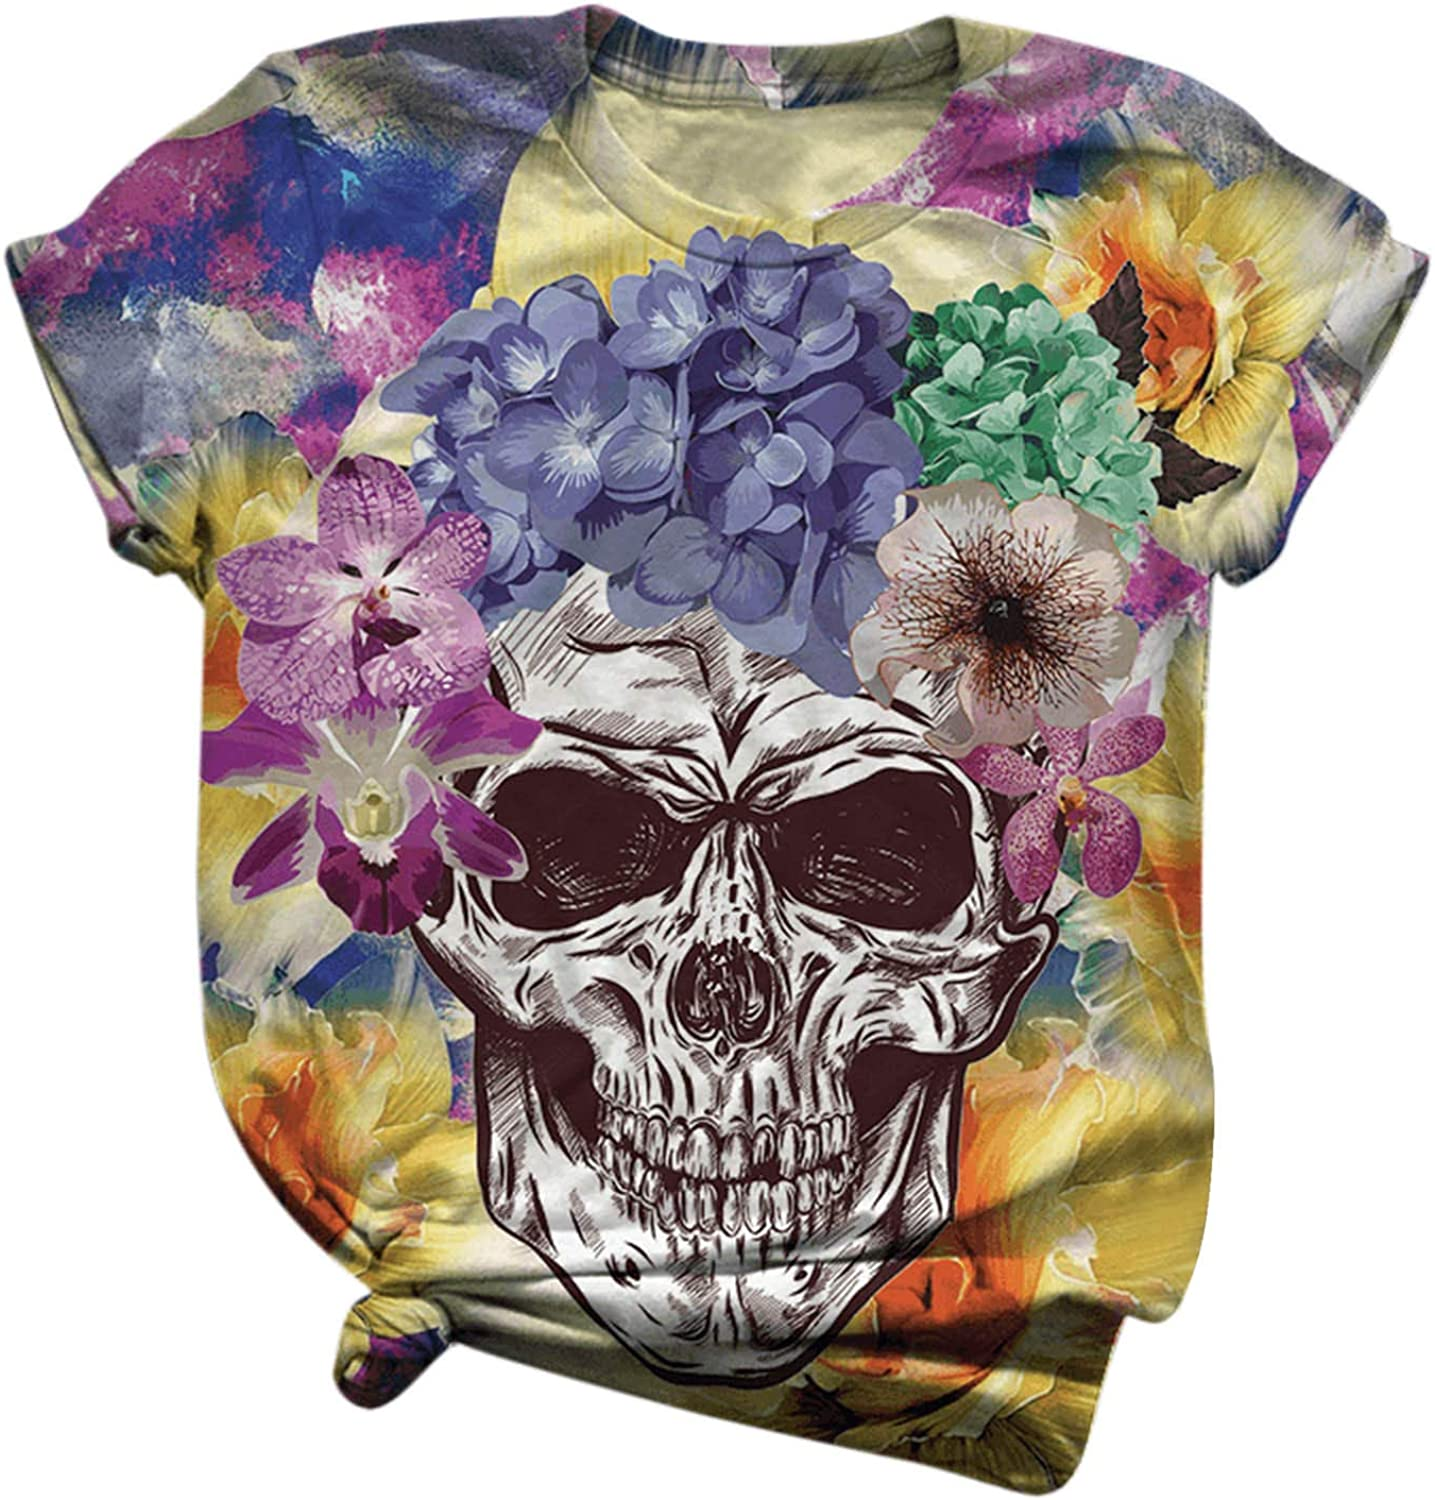 Womens Short Sleeve Tops, naioewe Skull Print Shirts for Women Plus Size O-Neck T Shirt Blouse Tops Funny Graphic Tees